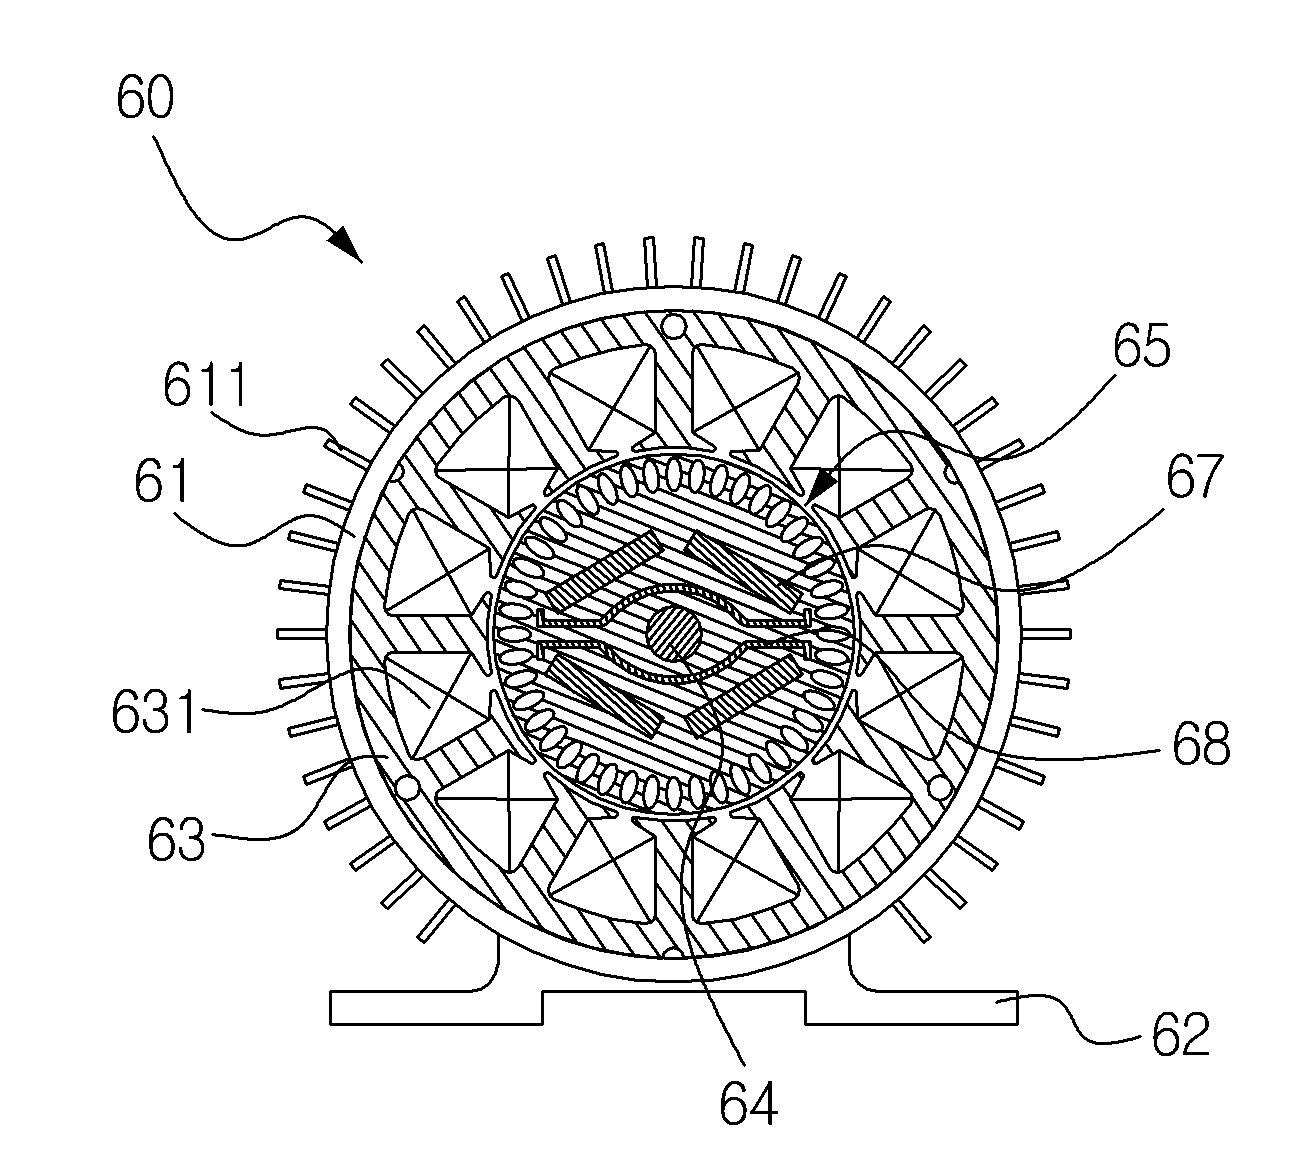 Patent Wo2014104826a1 Rotor Of Interior Permanent Magnet Motor For Preventing Leakage Flux